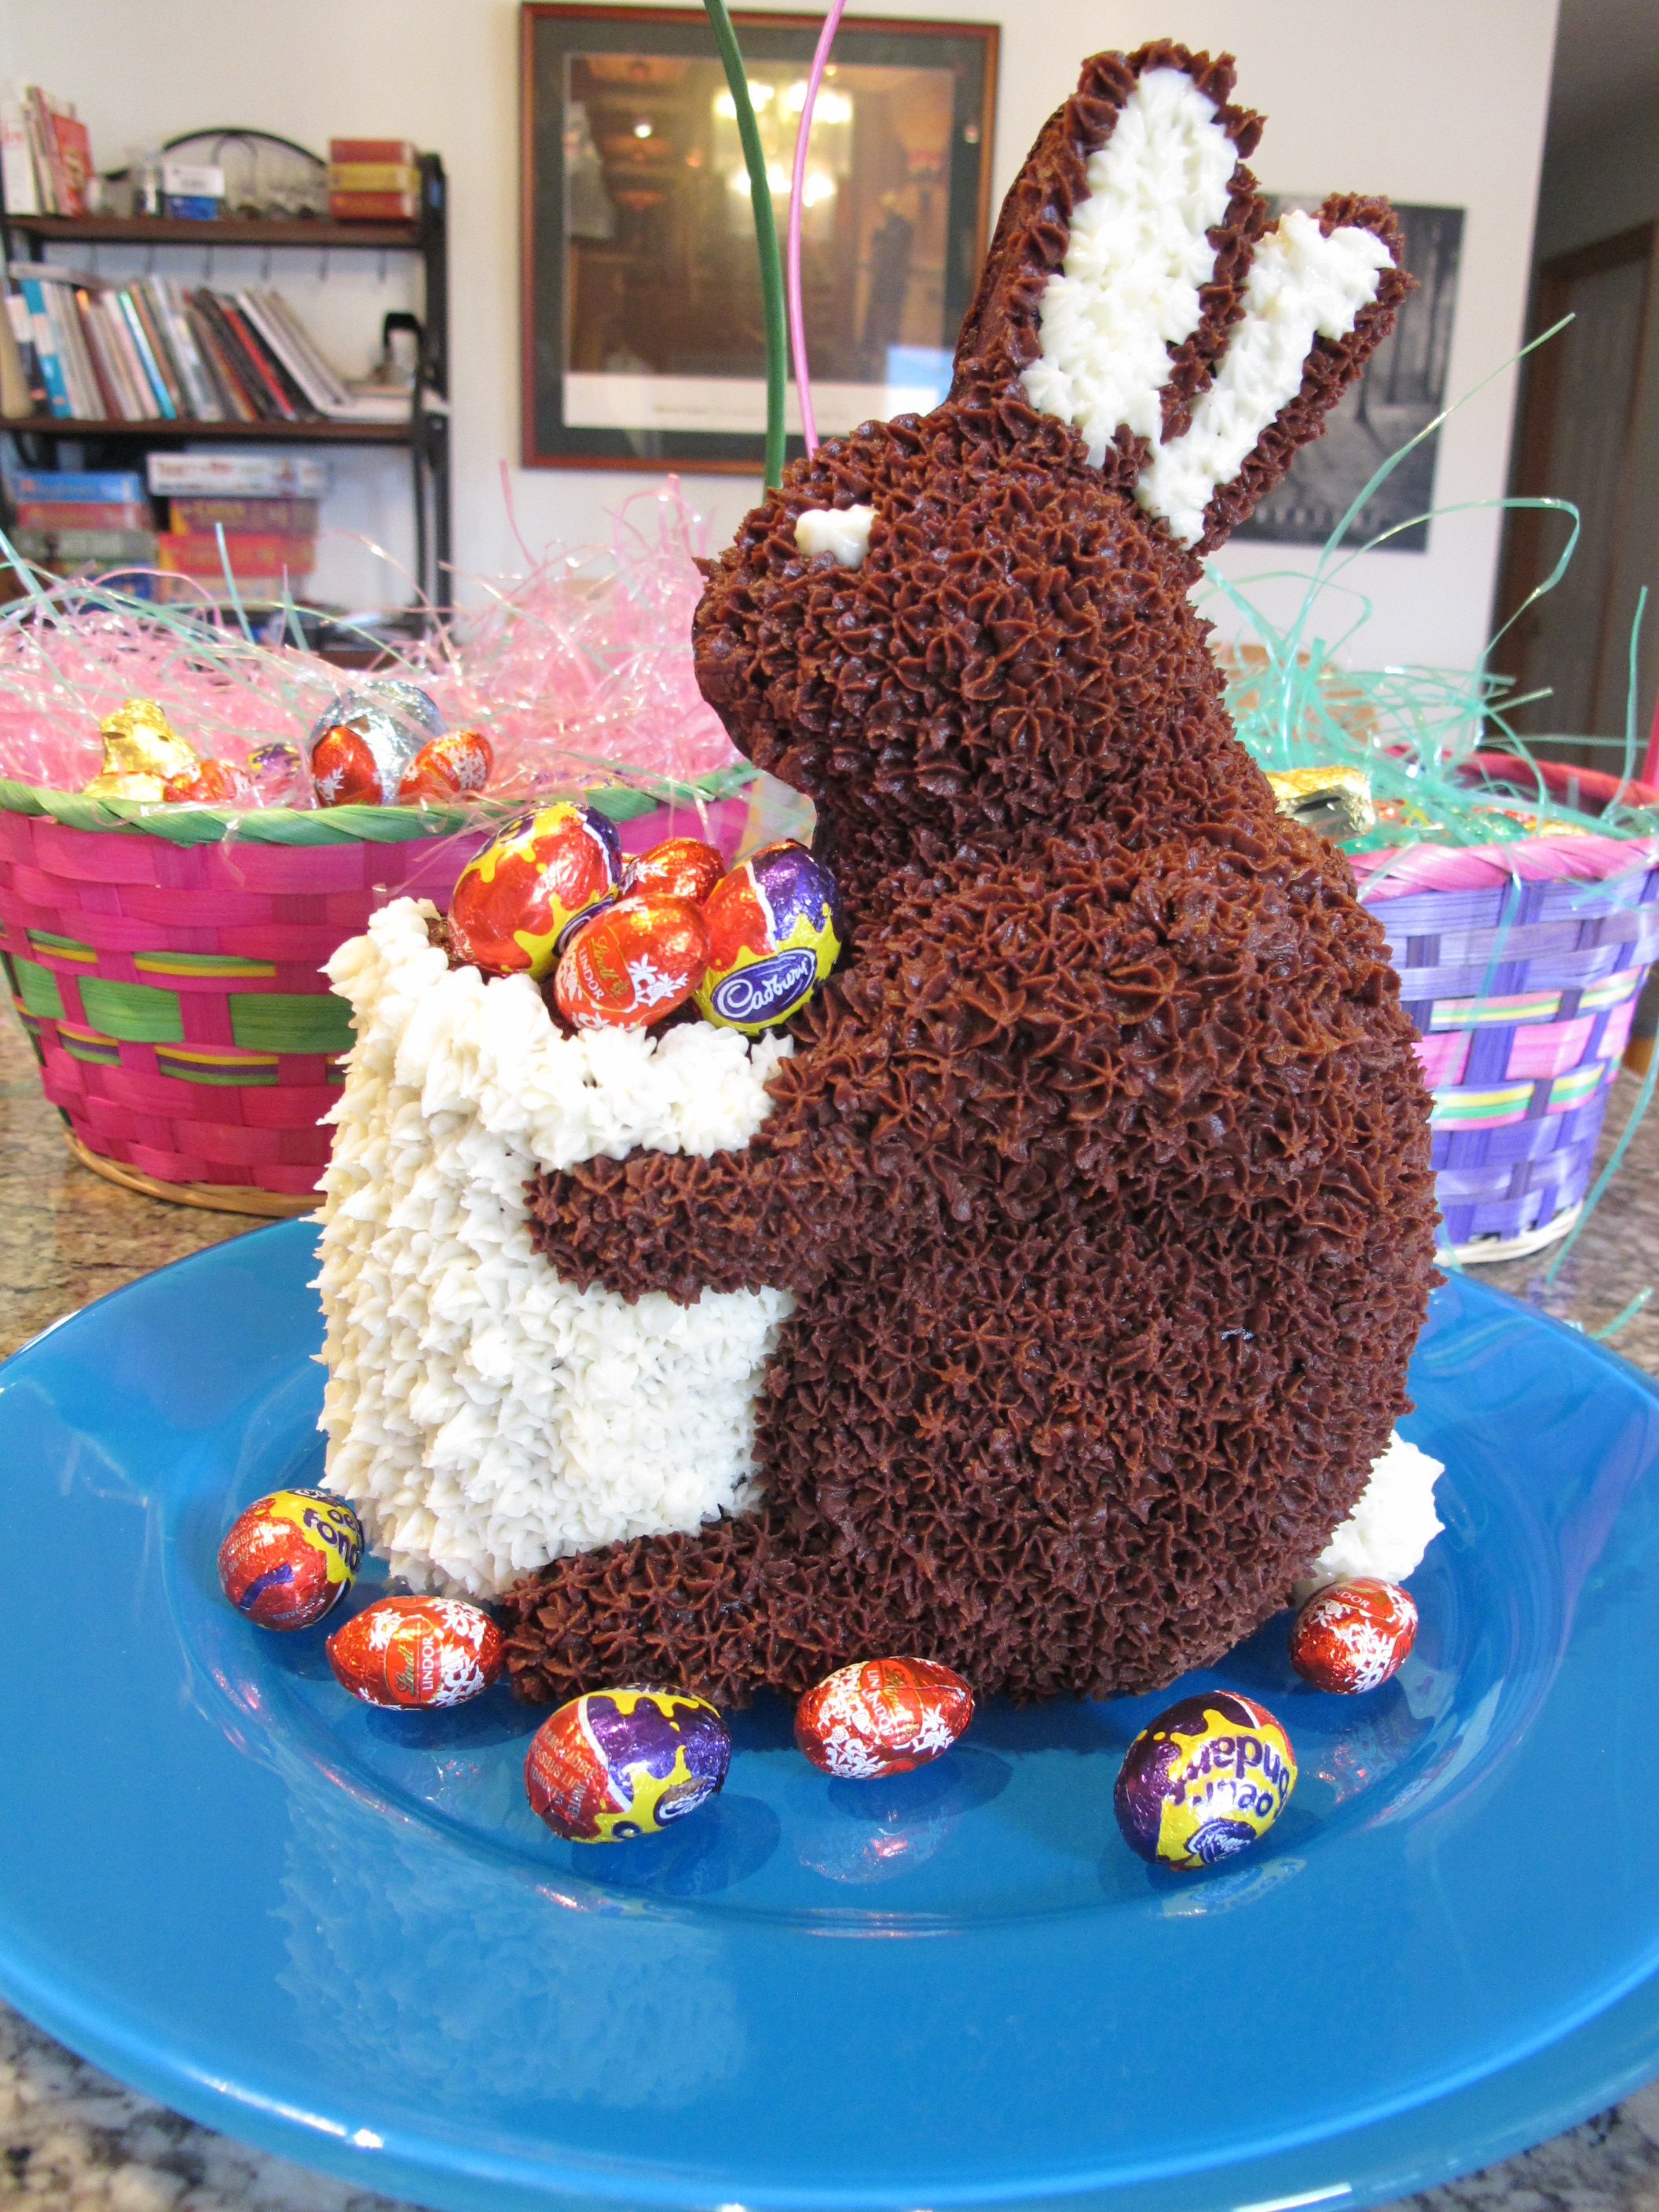 Awe Inspiring Easter Bunny Cakes Decoration Ideas Little Birthday Cakes Funny Birthday Cards Online Barepcheapnameinfo